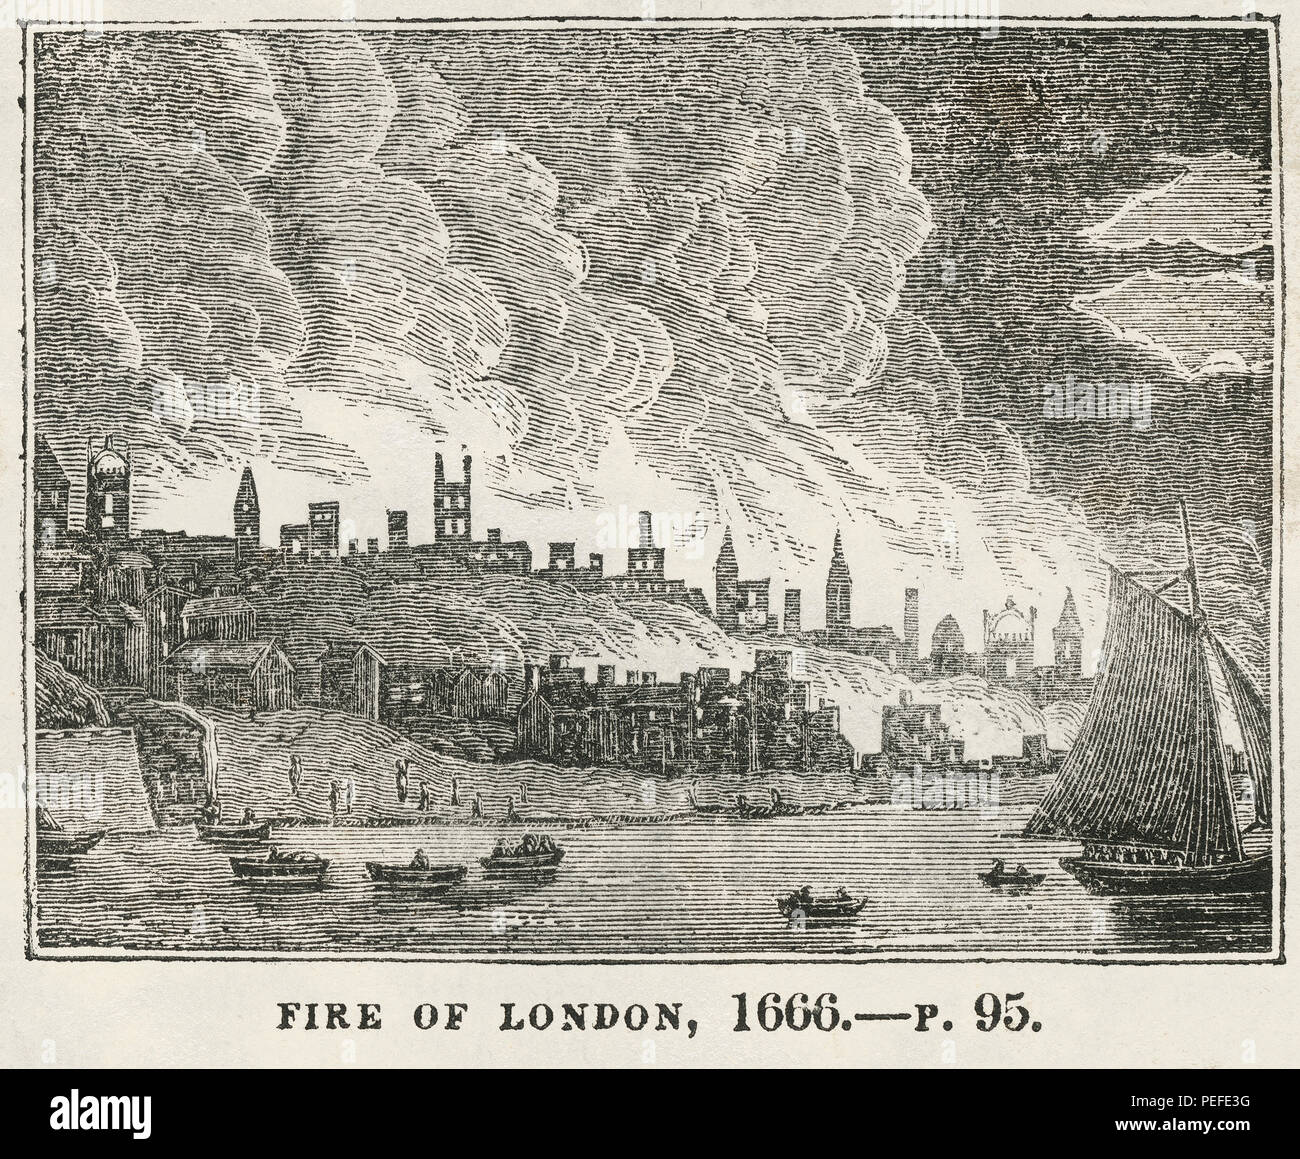 Fire of London, 1666, Illustration from the Book, Historical Cabinet, L.H. Young Publisher, New Haven, 1834 - Stock Image